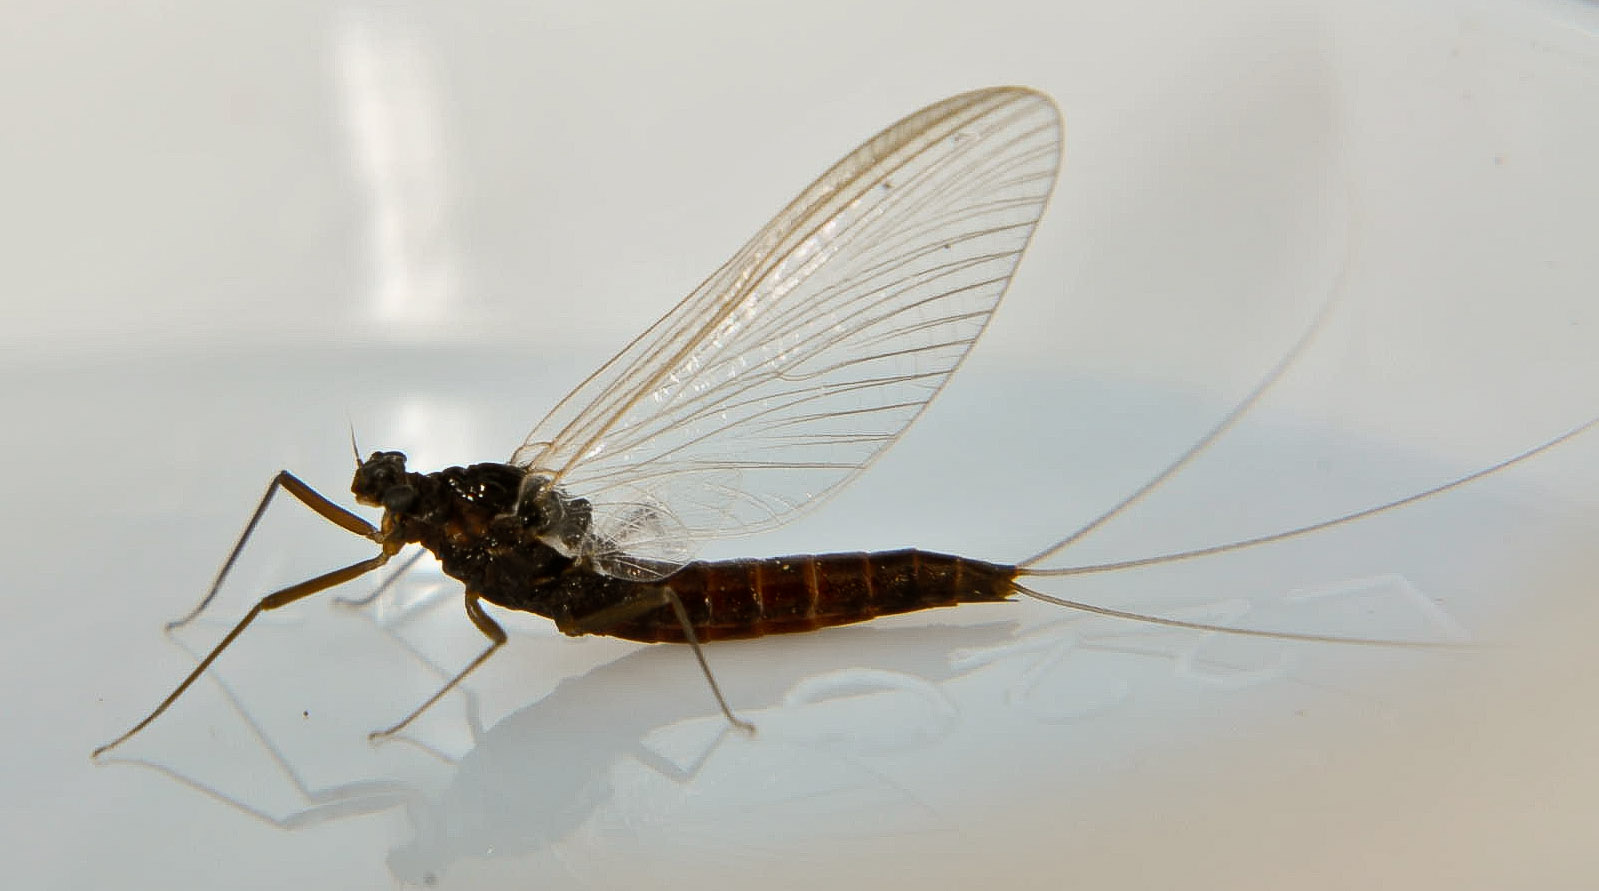 Female Paraleptophlebia (Blue Quills and Mahogany Duns) Mayfly Adult from the Touchet River in Washington